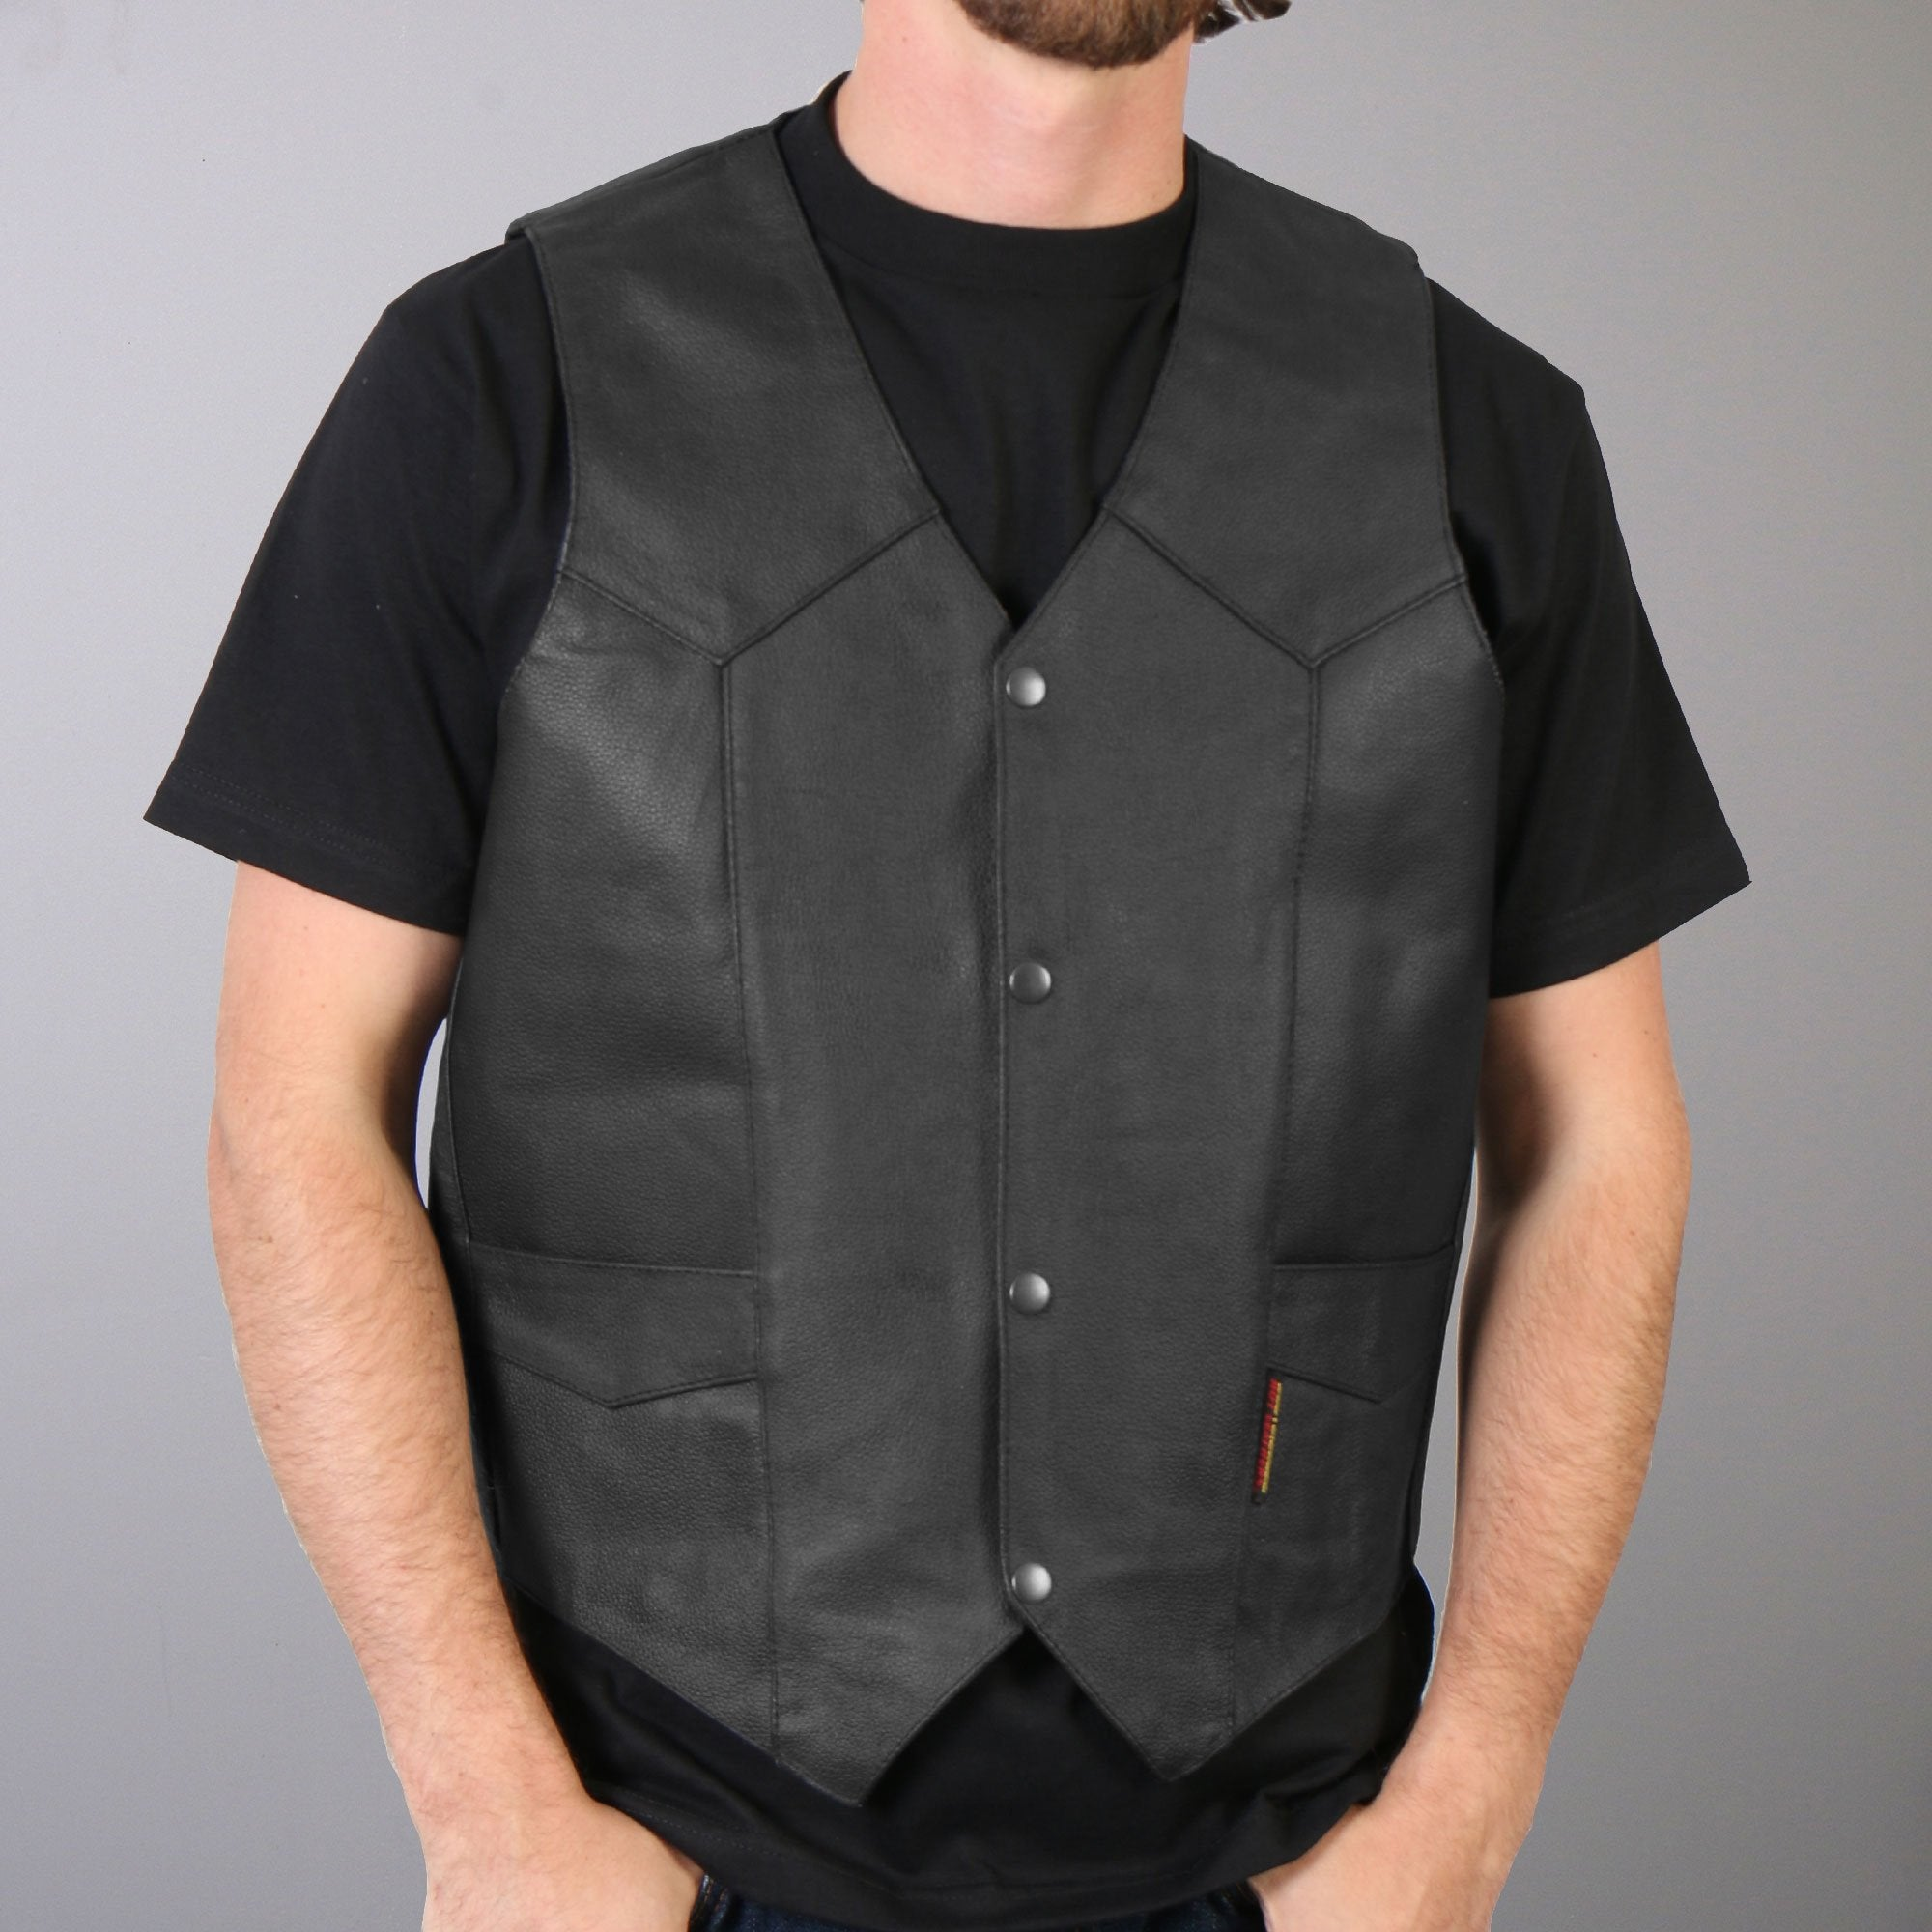 Hot Leathers Men's Heavyweight Leather Vest w/ Inside Pocket